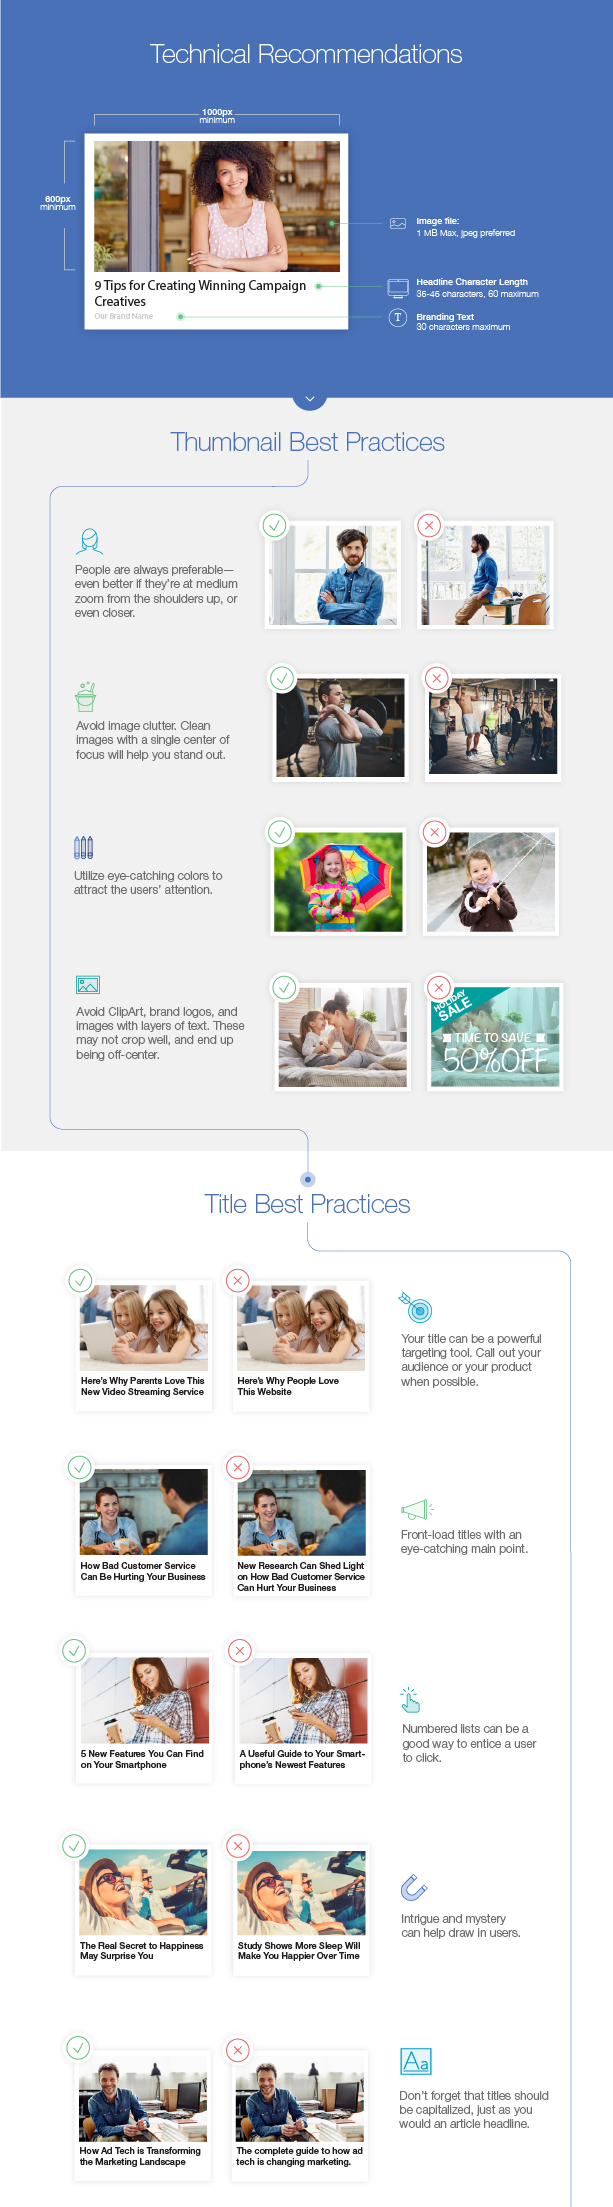 onesheet__Best_Practices_creative-NG-SMALL-V3-02.png